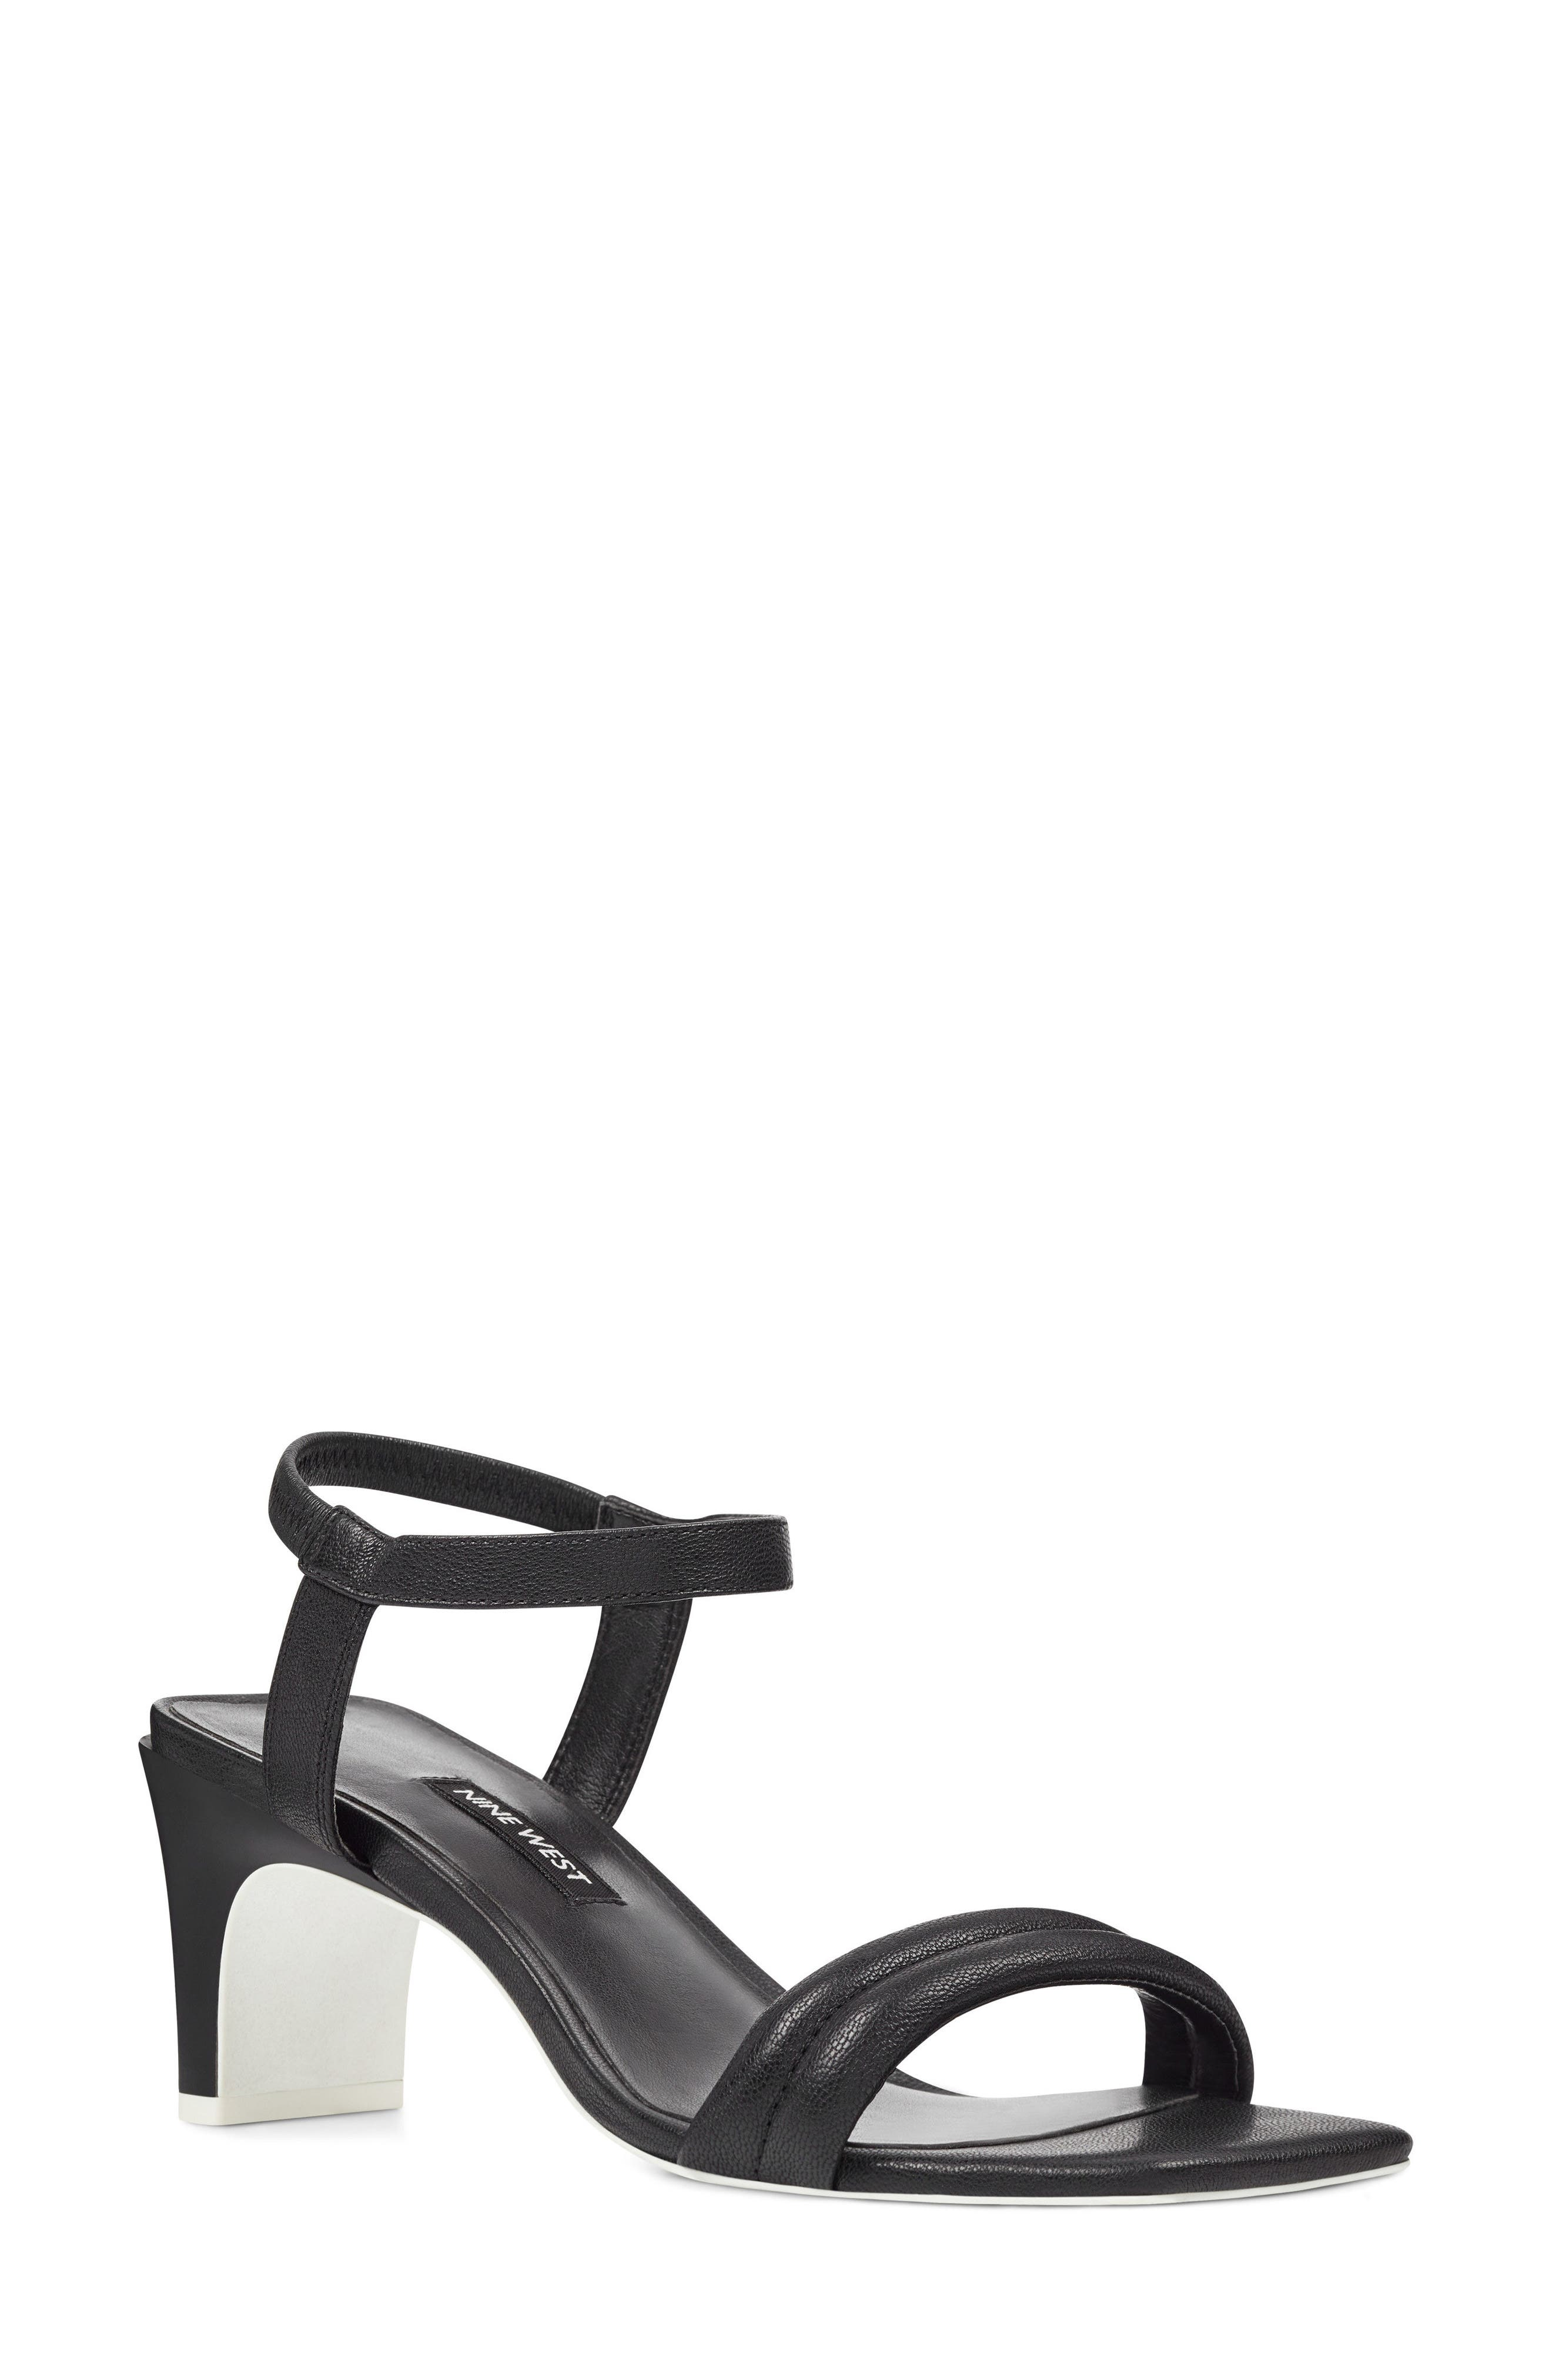 Urgreat Ankle Strap Sandal,                         Main,                         color, BLACK LEATHER